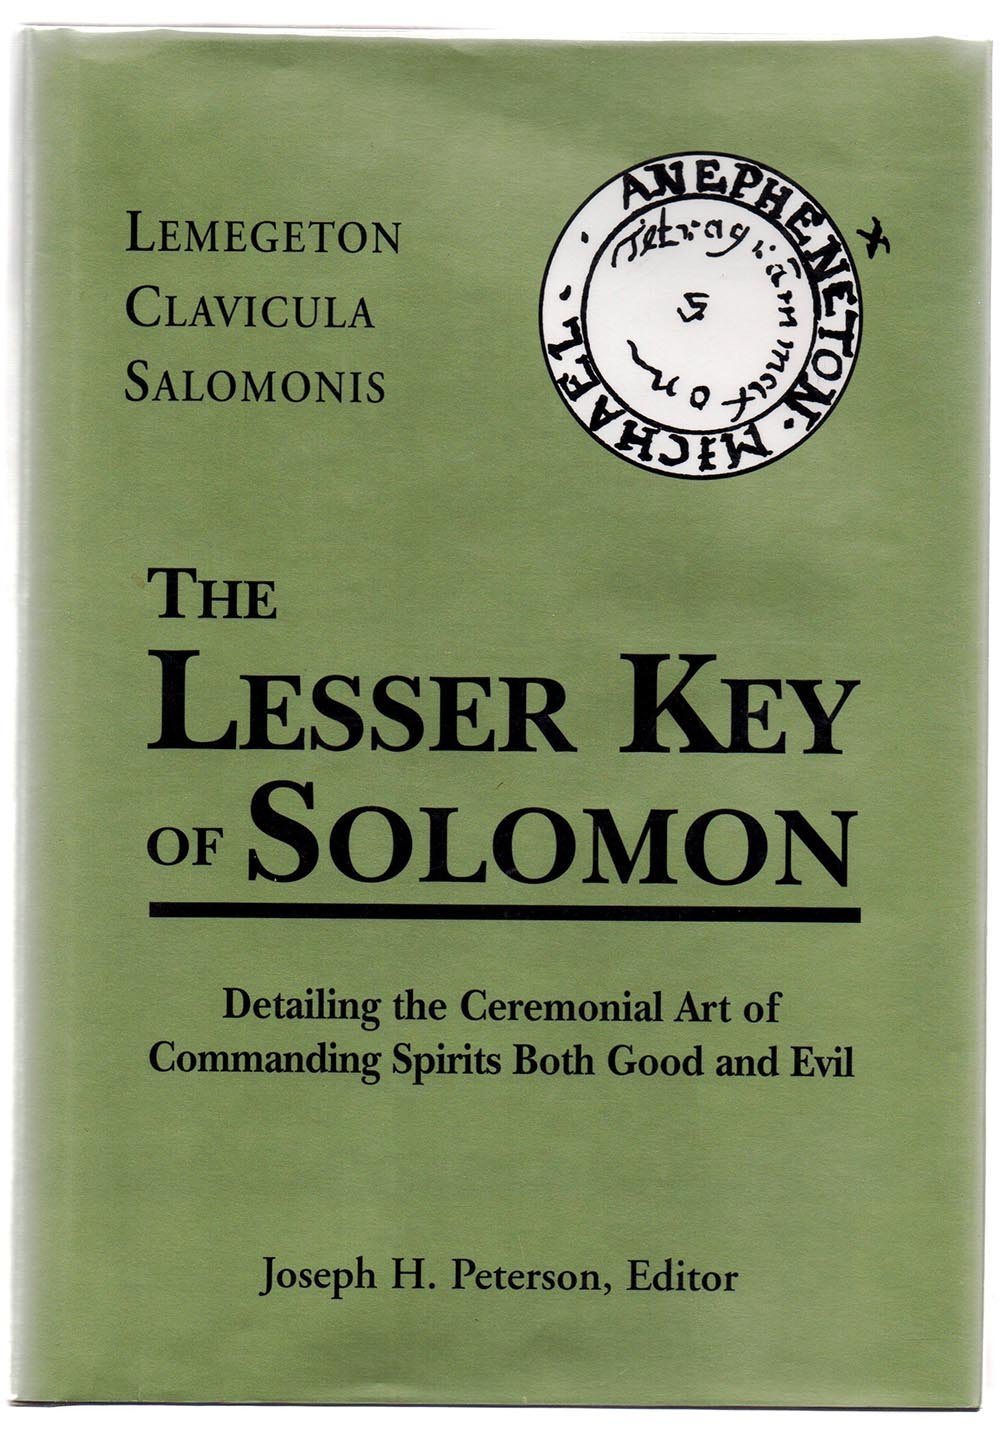 The Lesser Key of Solomon, Lemegeton Clavicula Salomonis: Detailing the Ceremonial Art of Commanding Spirits Both Good and Evil